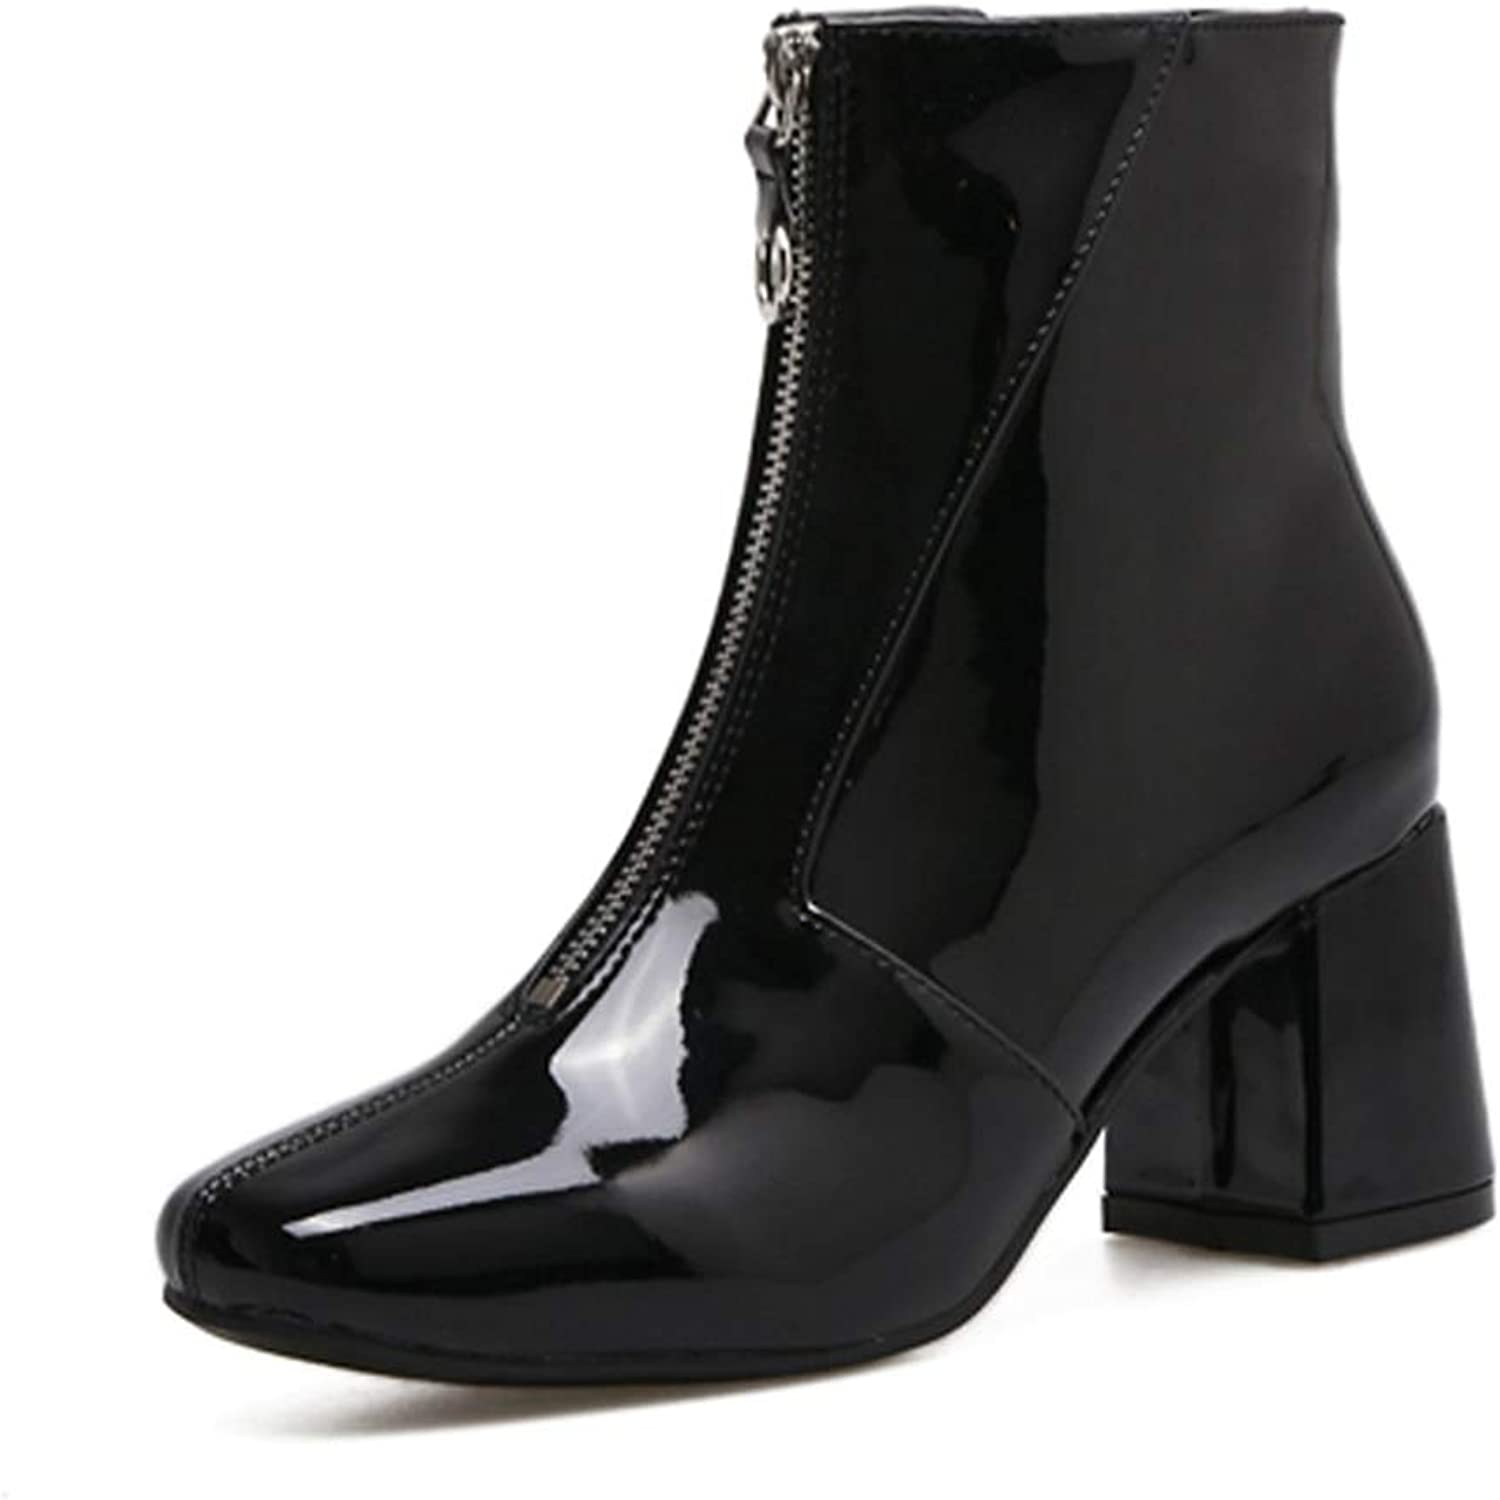 PU Ankle Boots for Women Patent Leather Round Toe Square Heels Front Zipper Chelsea Bootie